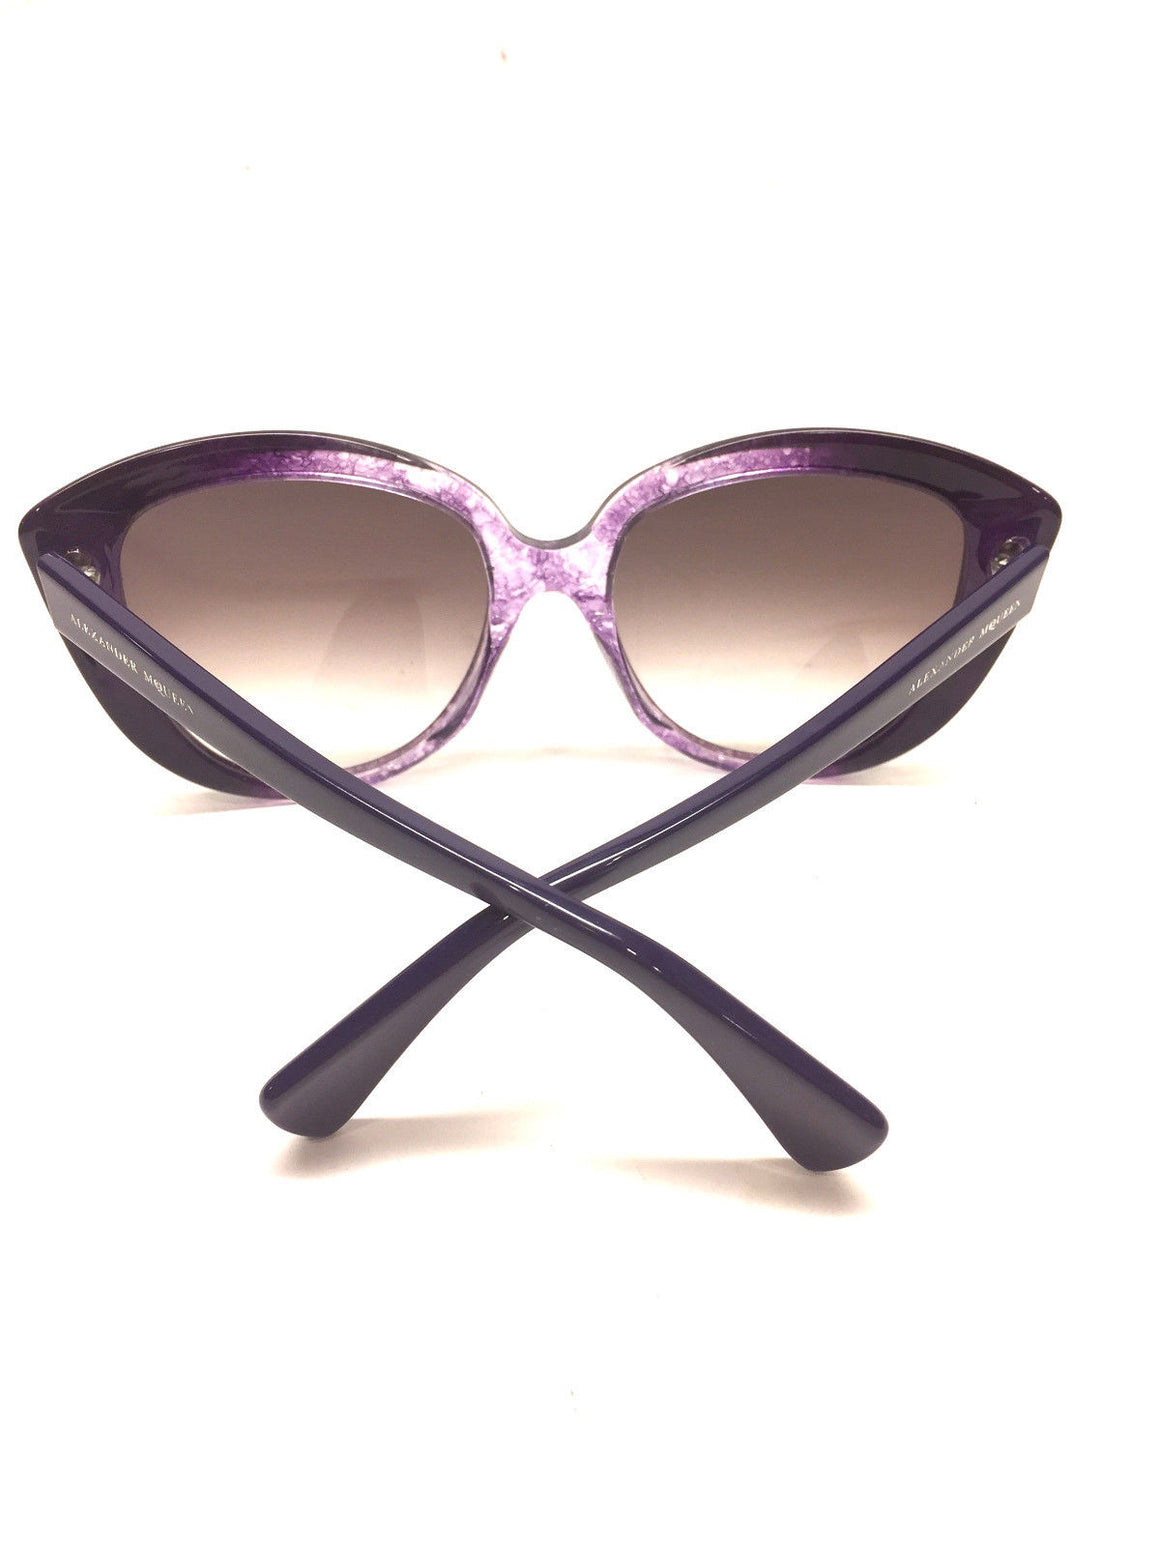 bisbiz.com ALEXANDER McQUEEN  Variegated Purple Frame Cat-eye Sunglasses  Style #AMQ 4234/S - Bis Luxury Resale